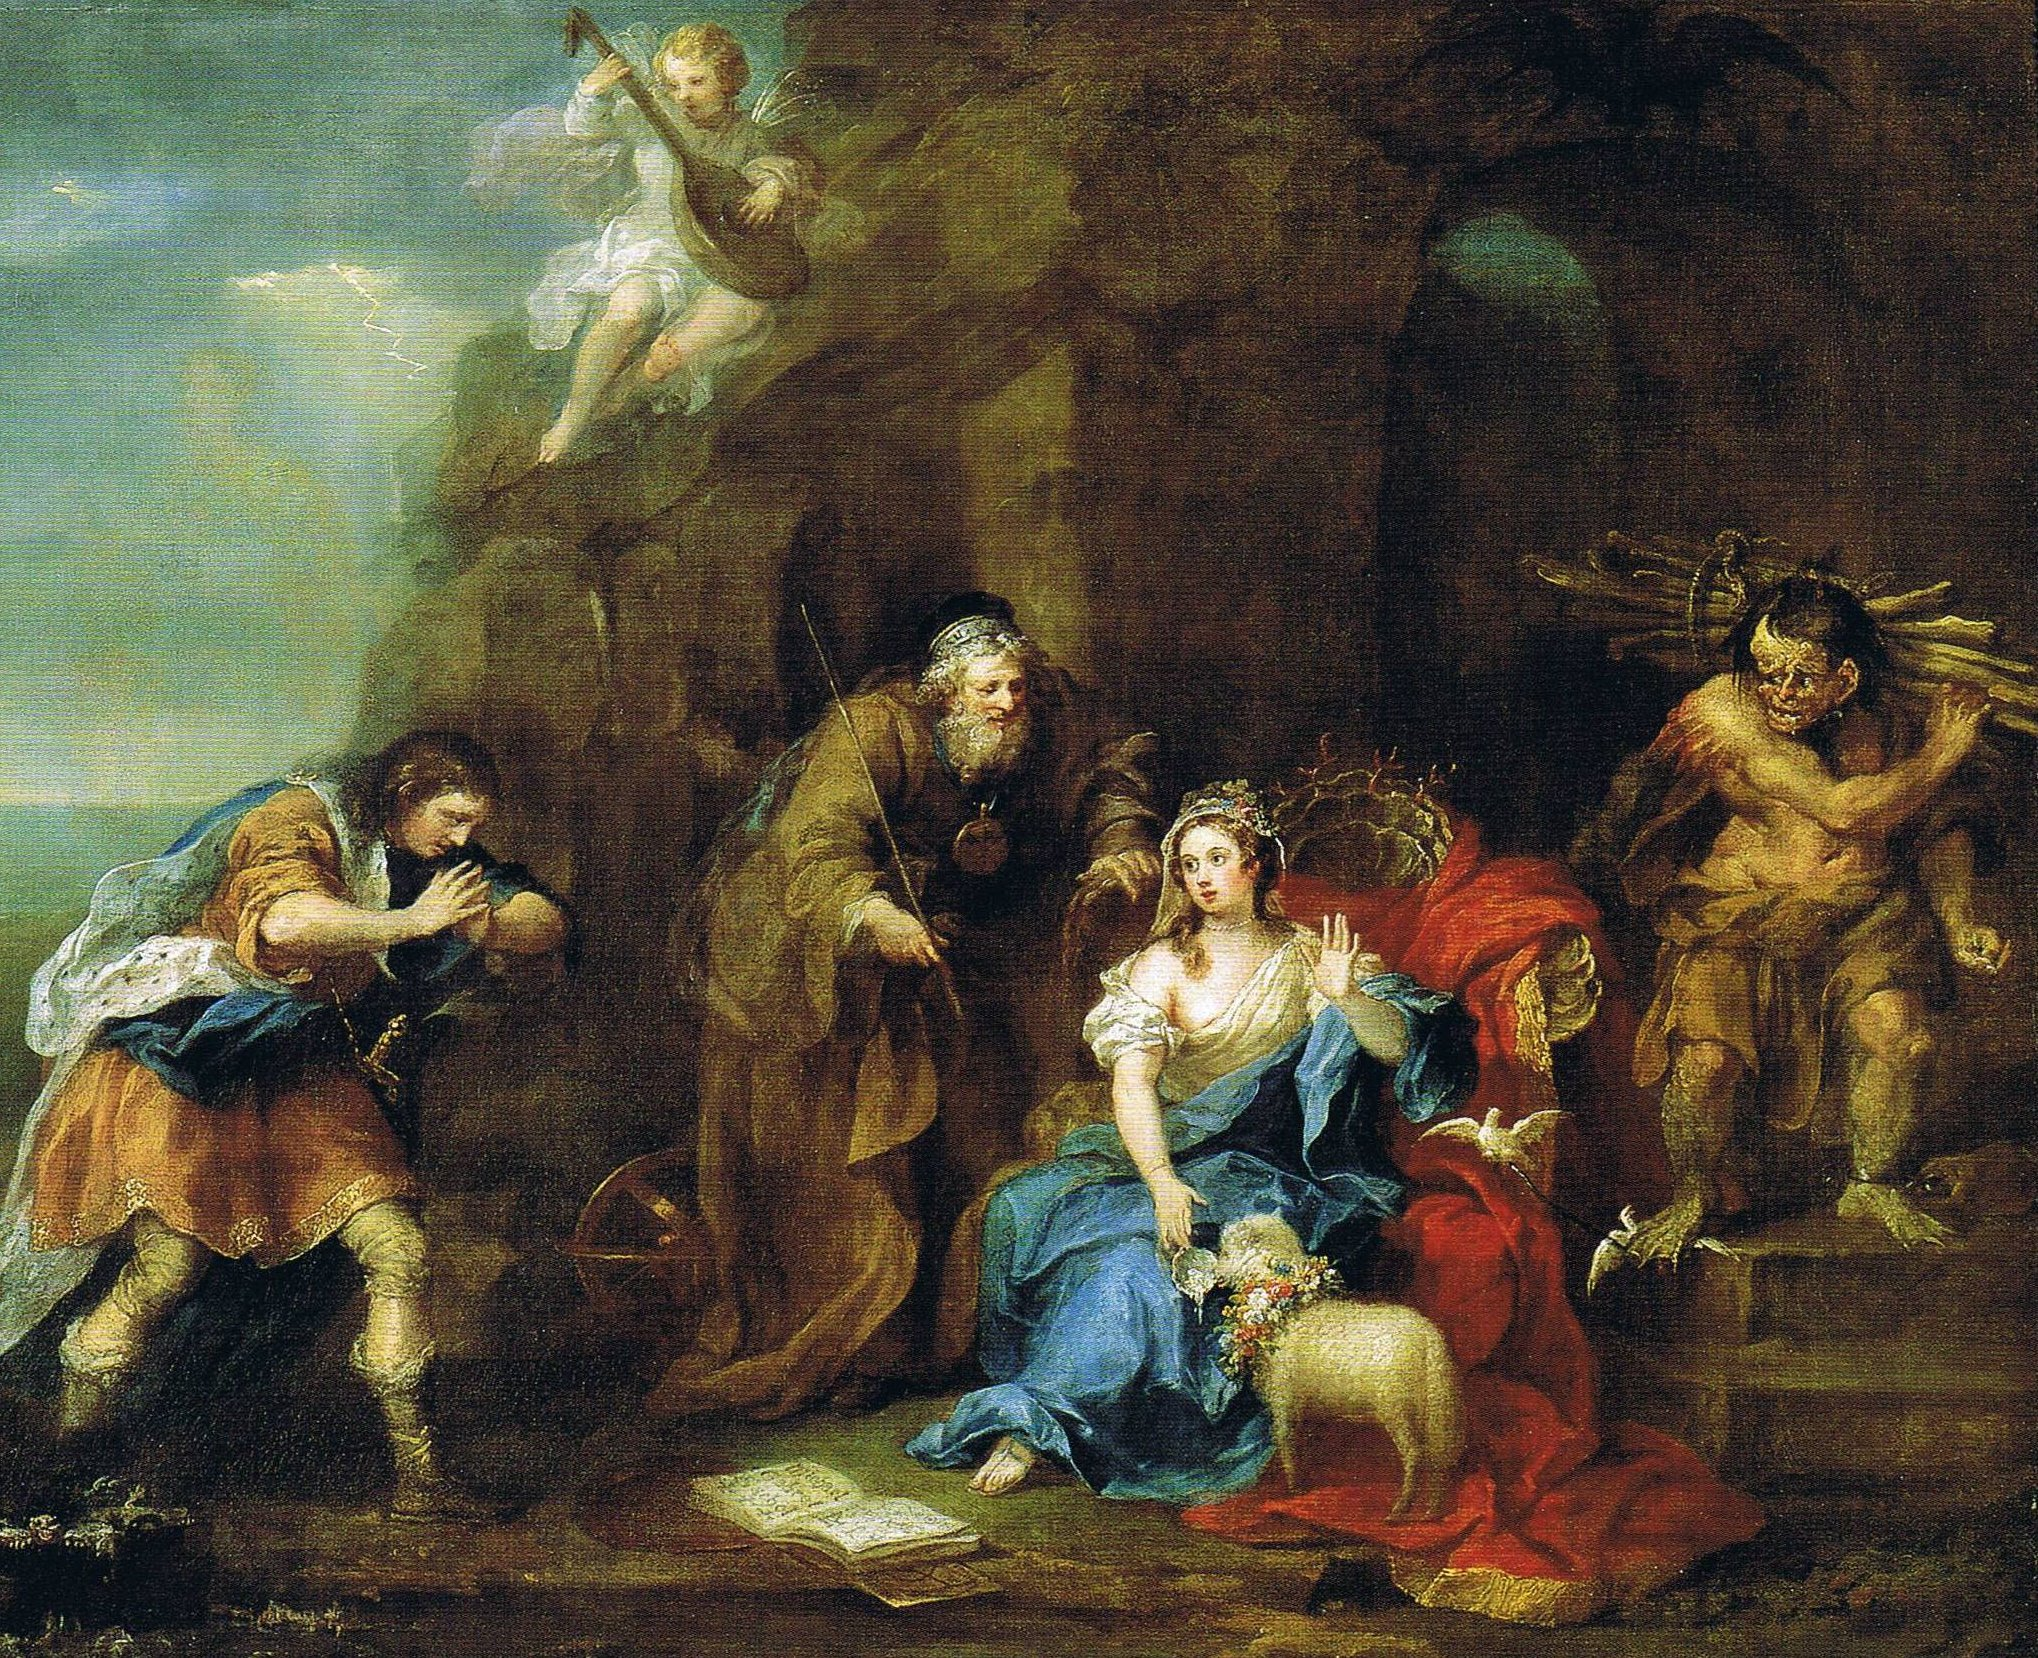 A Scene from Act I, Scene 2 (Ferdinand courting Miranda) of Shakespeare's